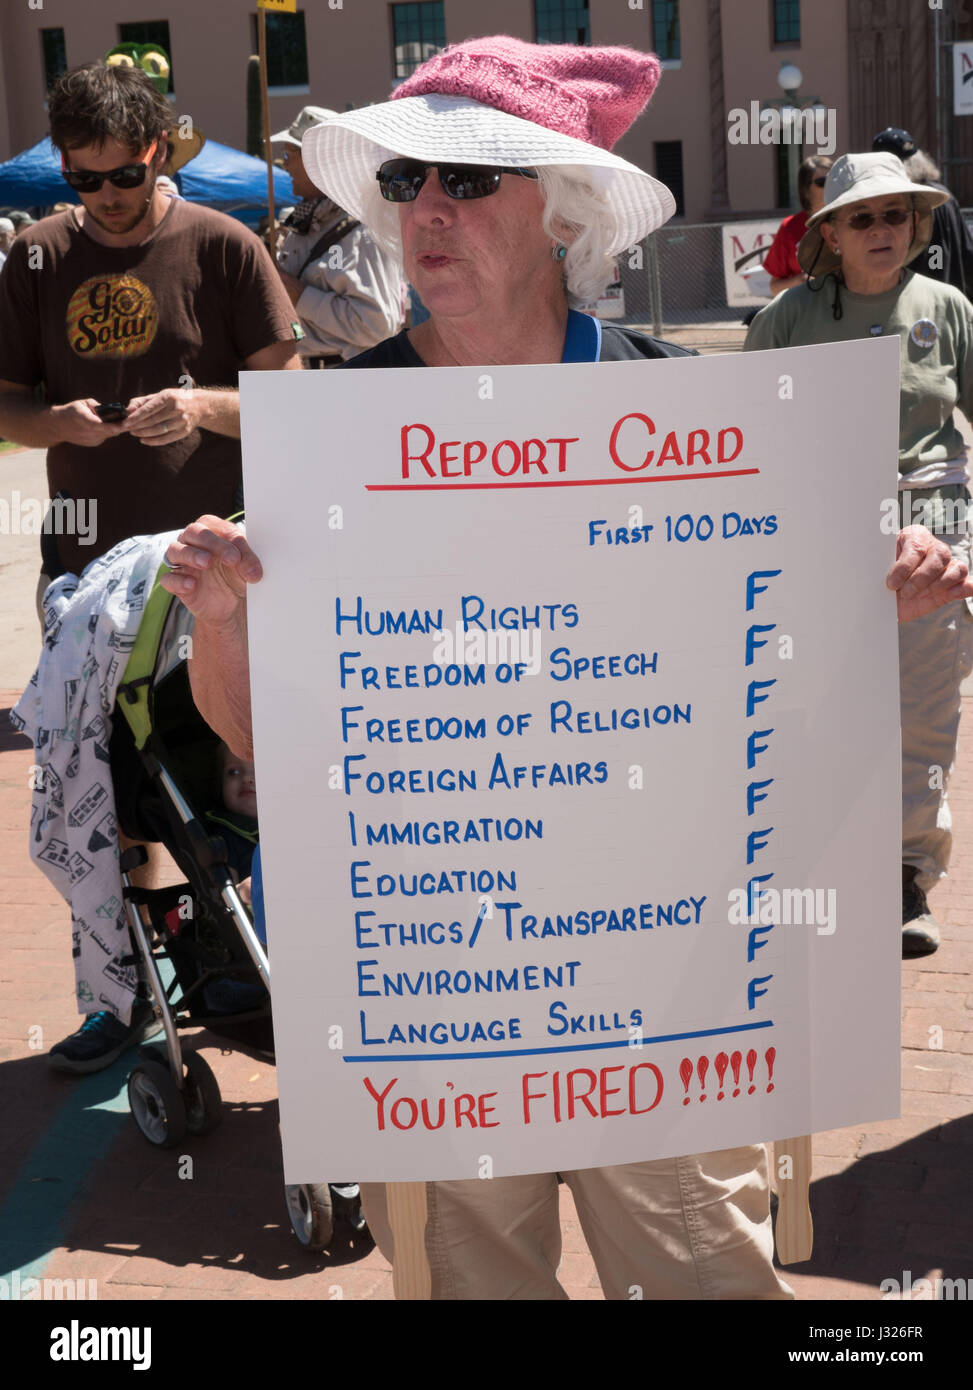 Report card for President Trump's accomplishments during his first 100 days in office, at People's Climate - Stock Image